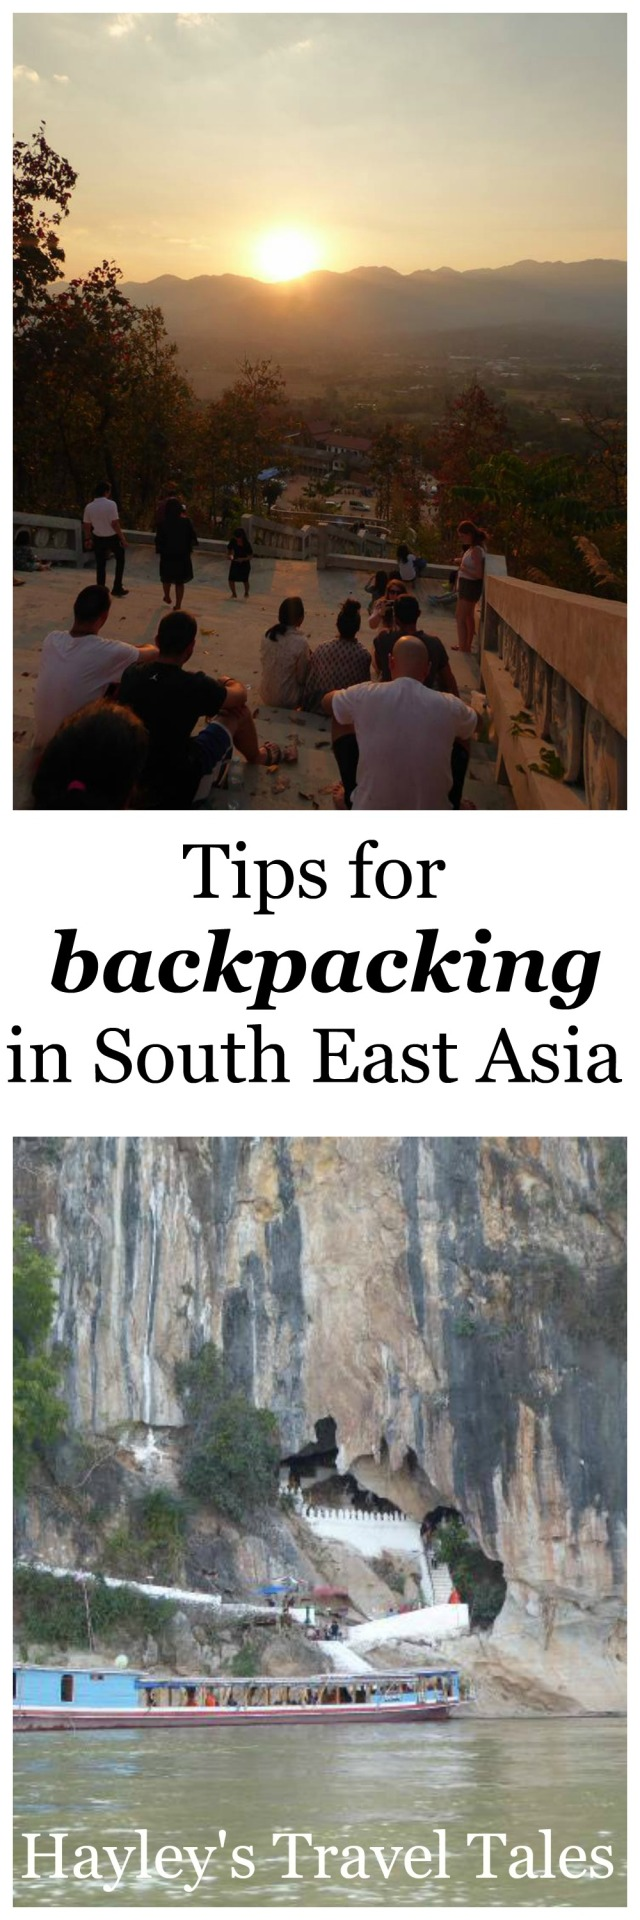 Tips for backpacking South East Asia